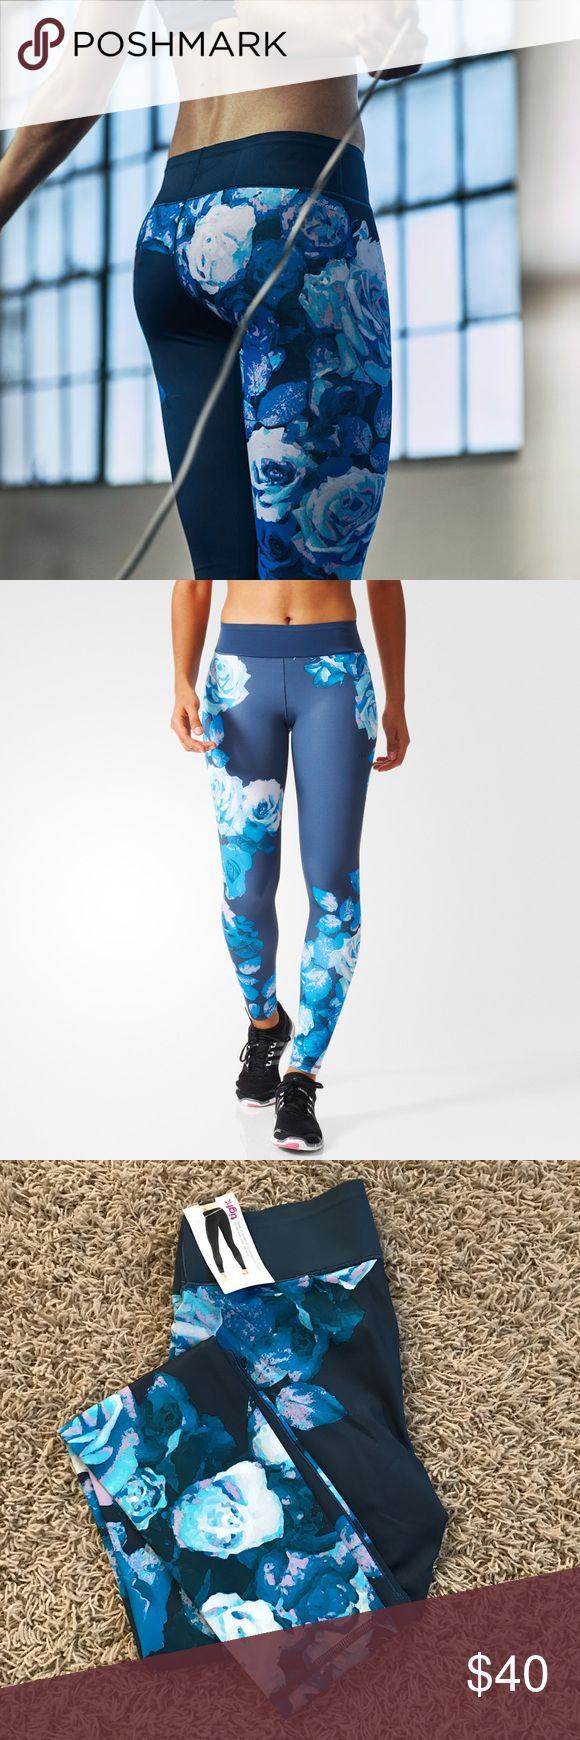 Adidas Europe Blue Floral Workout Tights Adidas Europe Blue Floral Work Out Tight •New with tags •Retails for $80  Check out my other listings- Nike, adidas, Michael Kors, Kate Spade, Miss Me, Coach, Wildfox, Victoria's Secret, PINK, Under Armour, True Religion and more! Adidas Pants Leggings